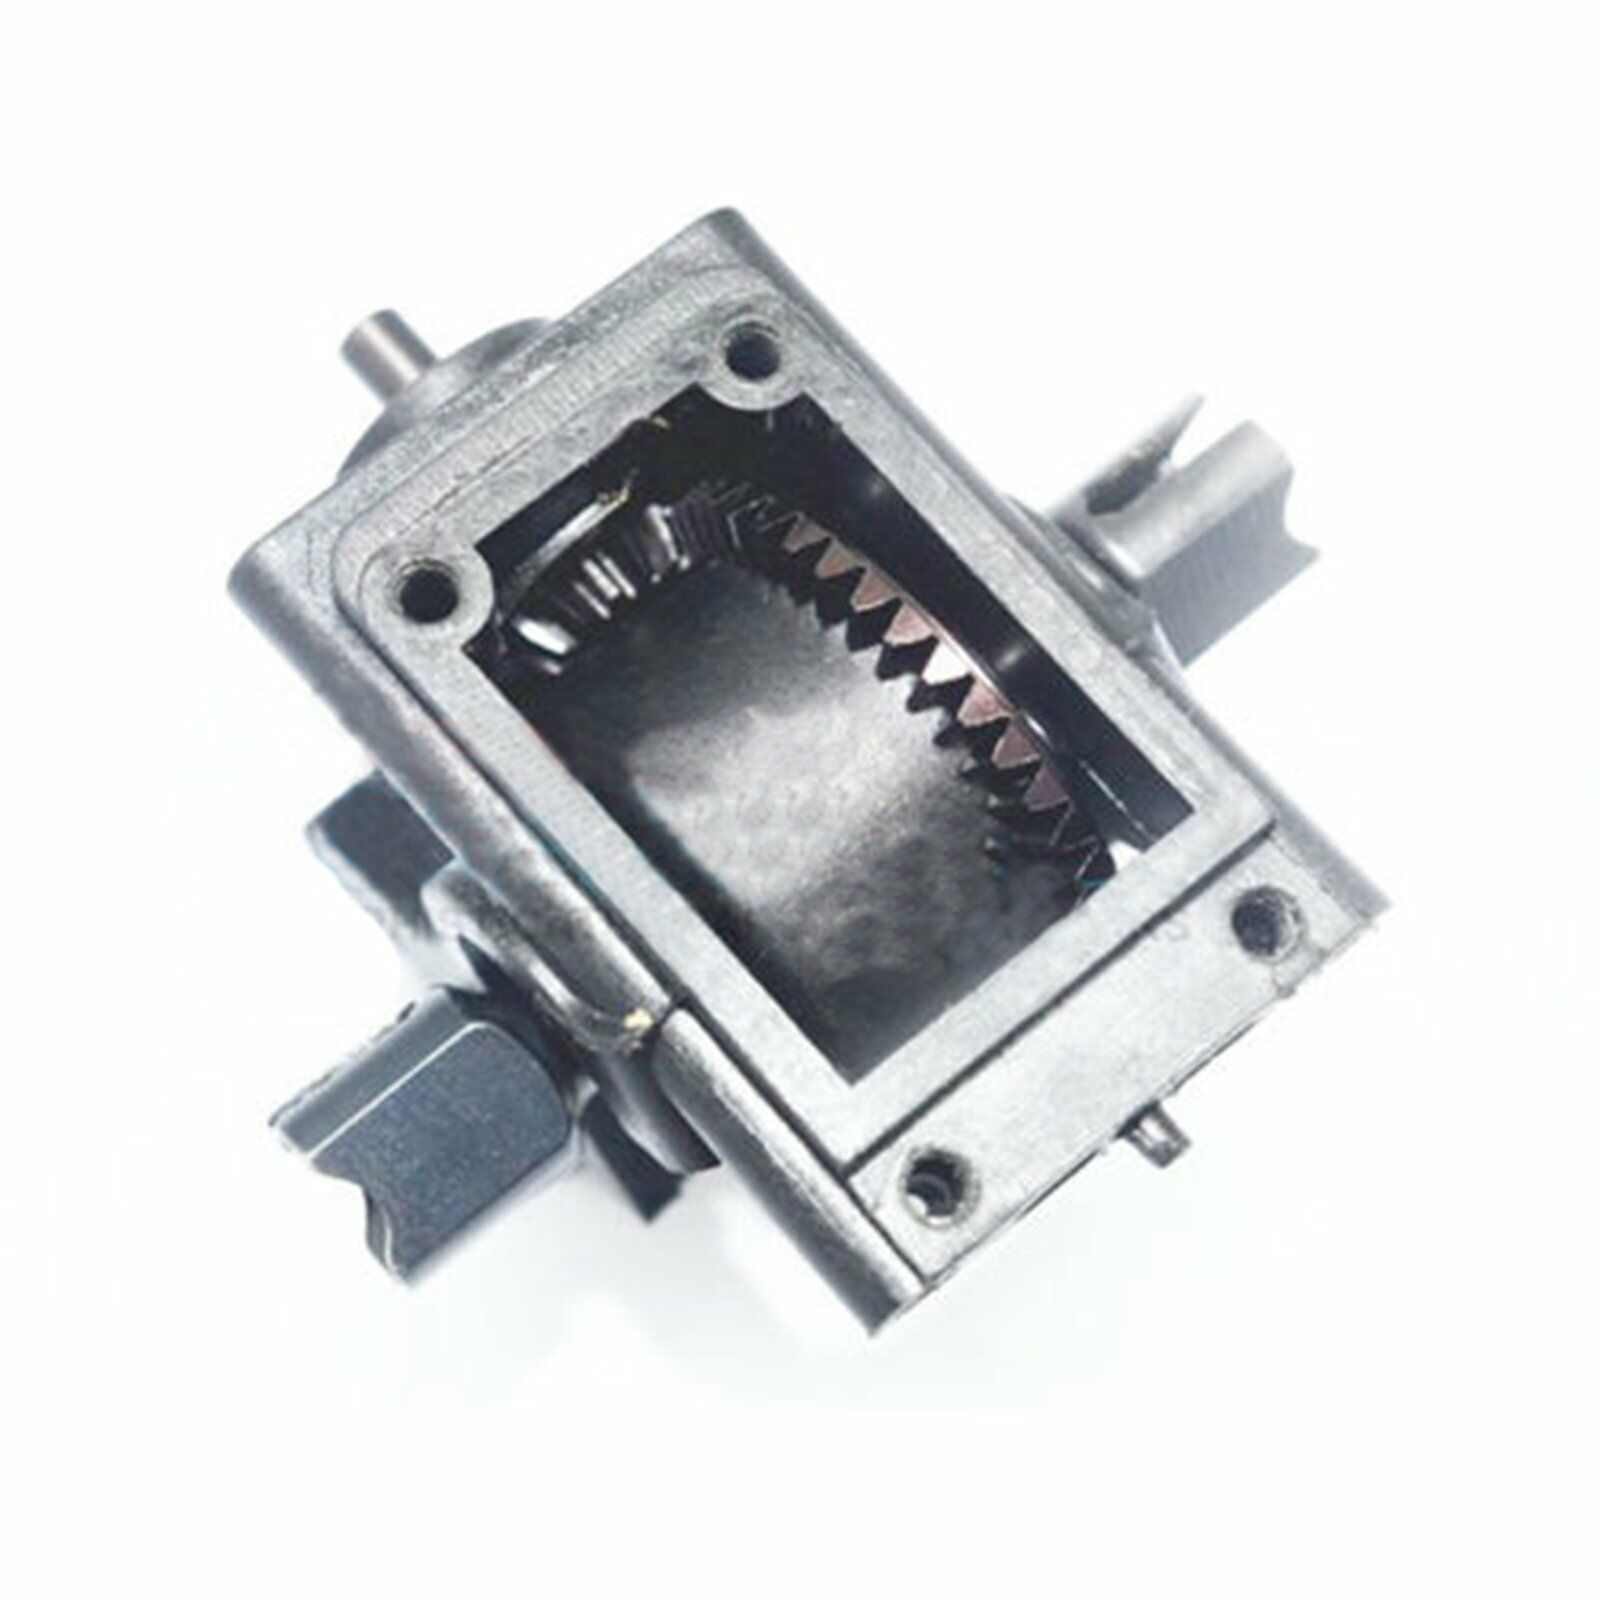 1 8 Front+Rear Steel Differential Gear Gearbox For Arrma Kraton Kraton Kraton Tailon Typhon RC f47b50